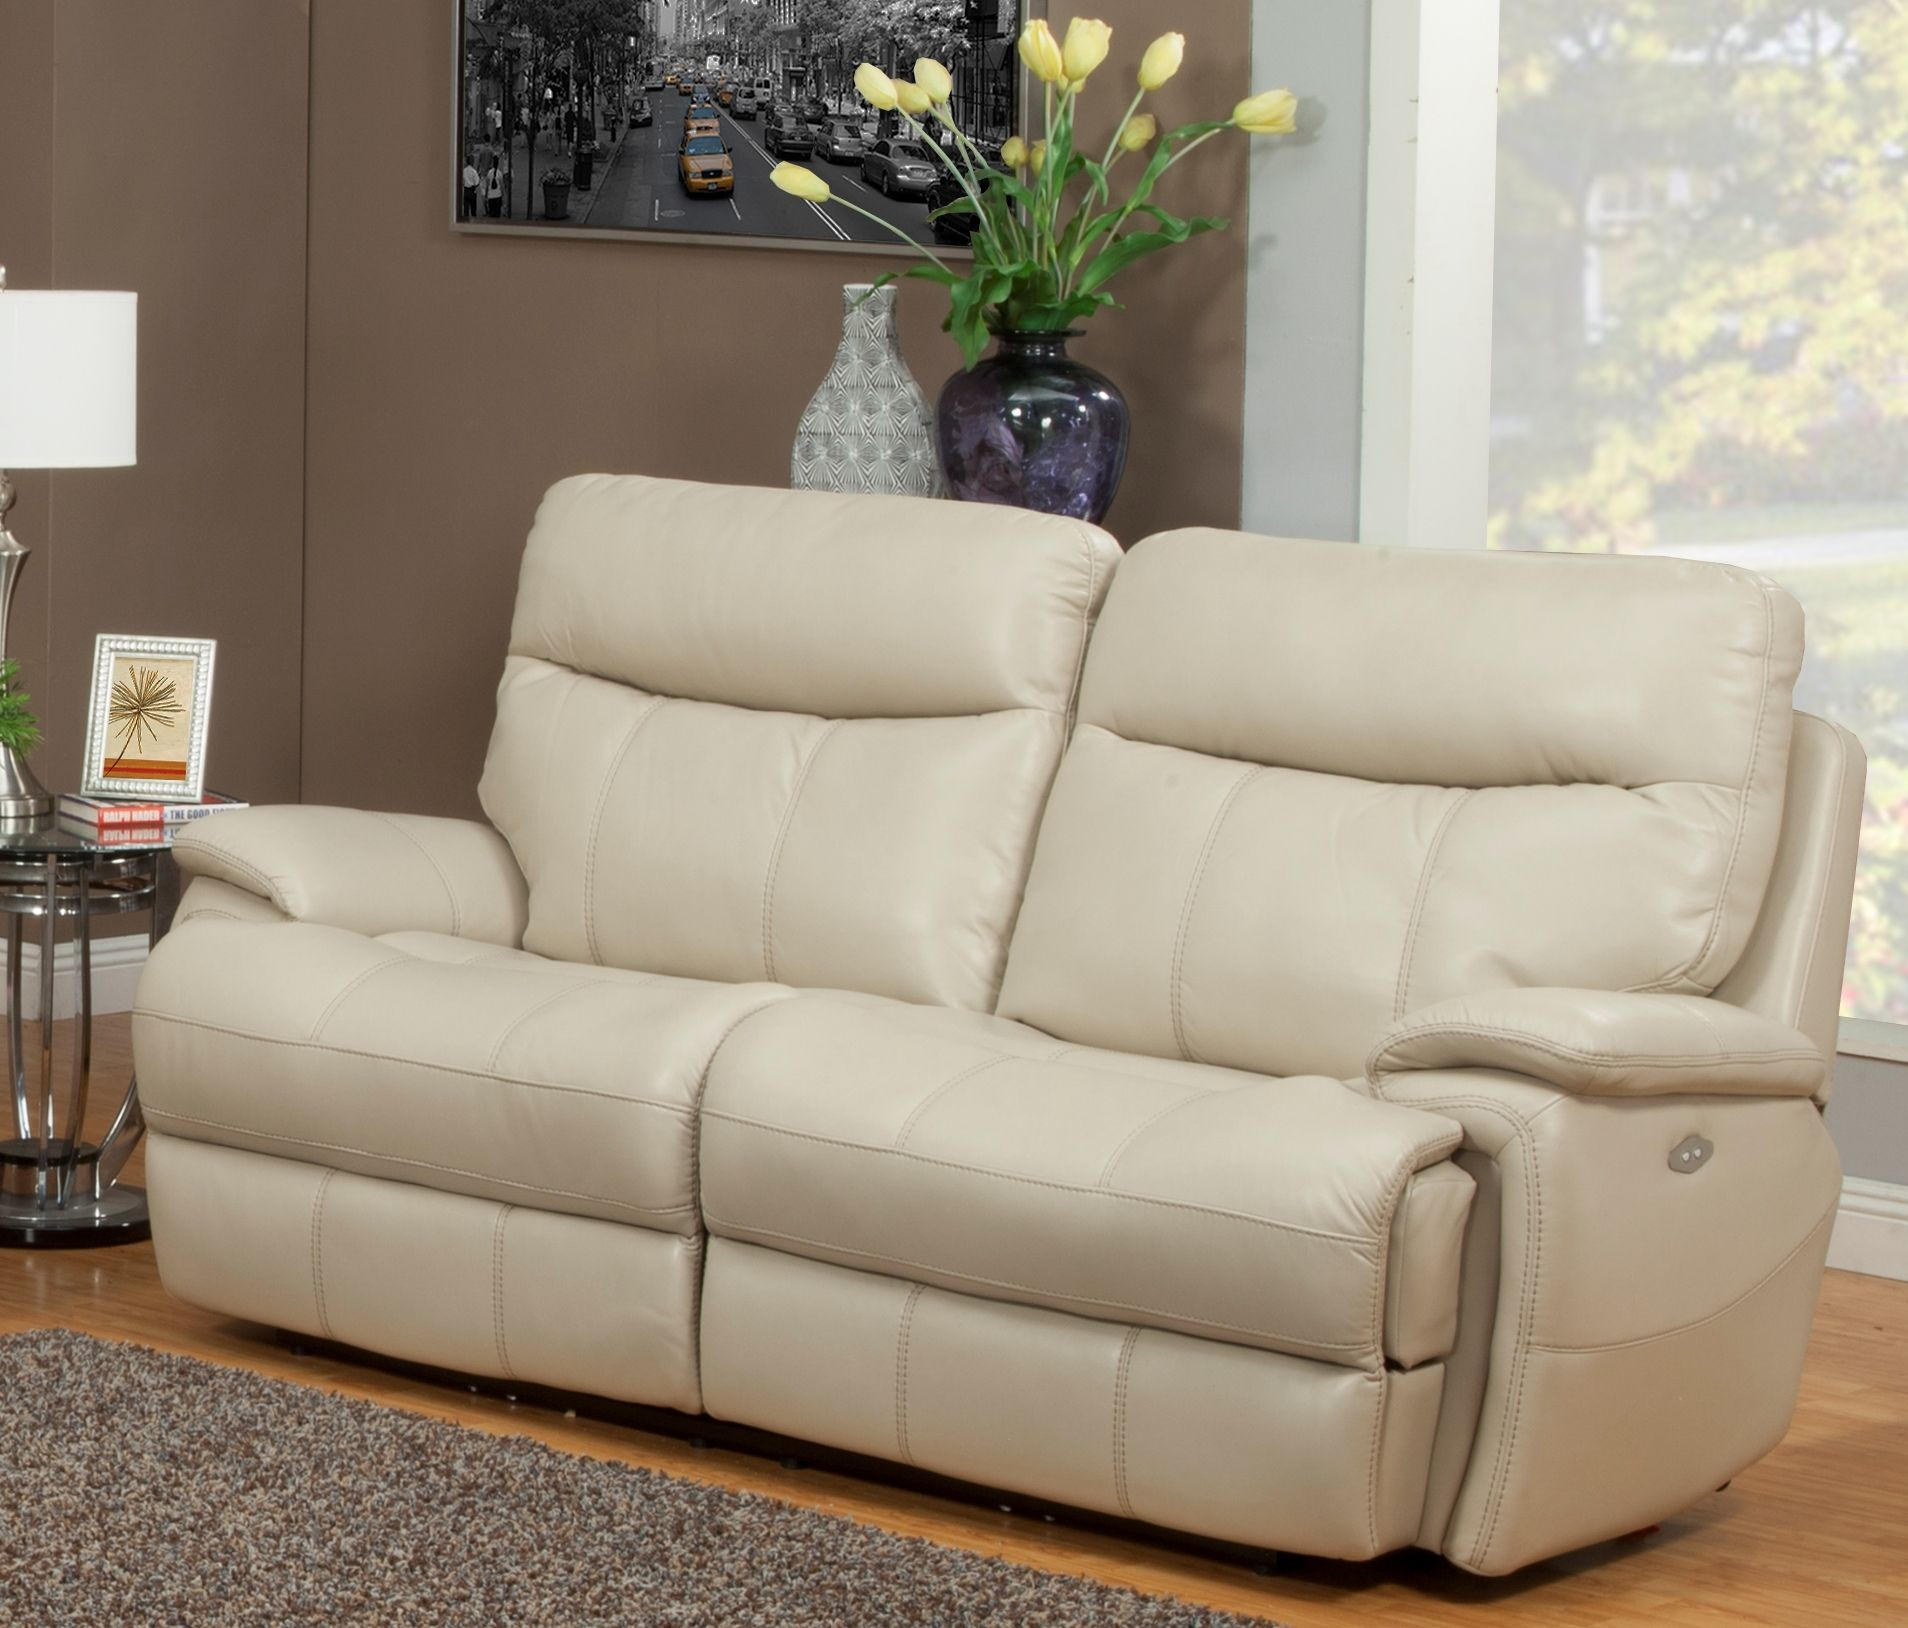 cream colored microfiber sofa chicago single bed creme. park place collection set in finish ...